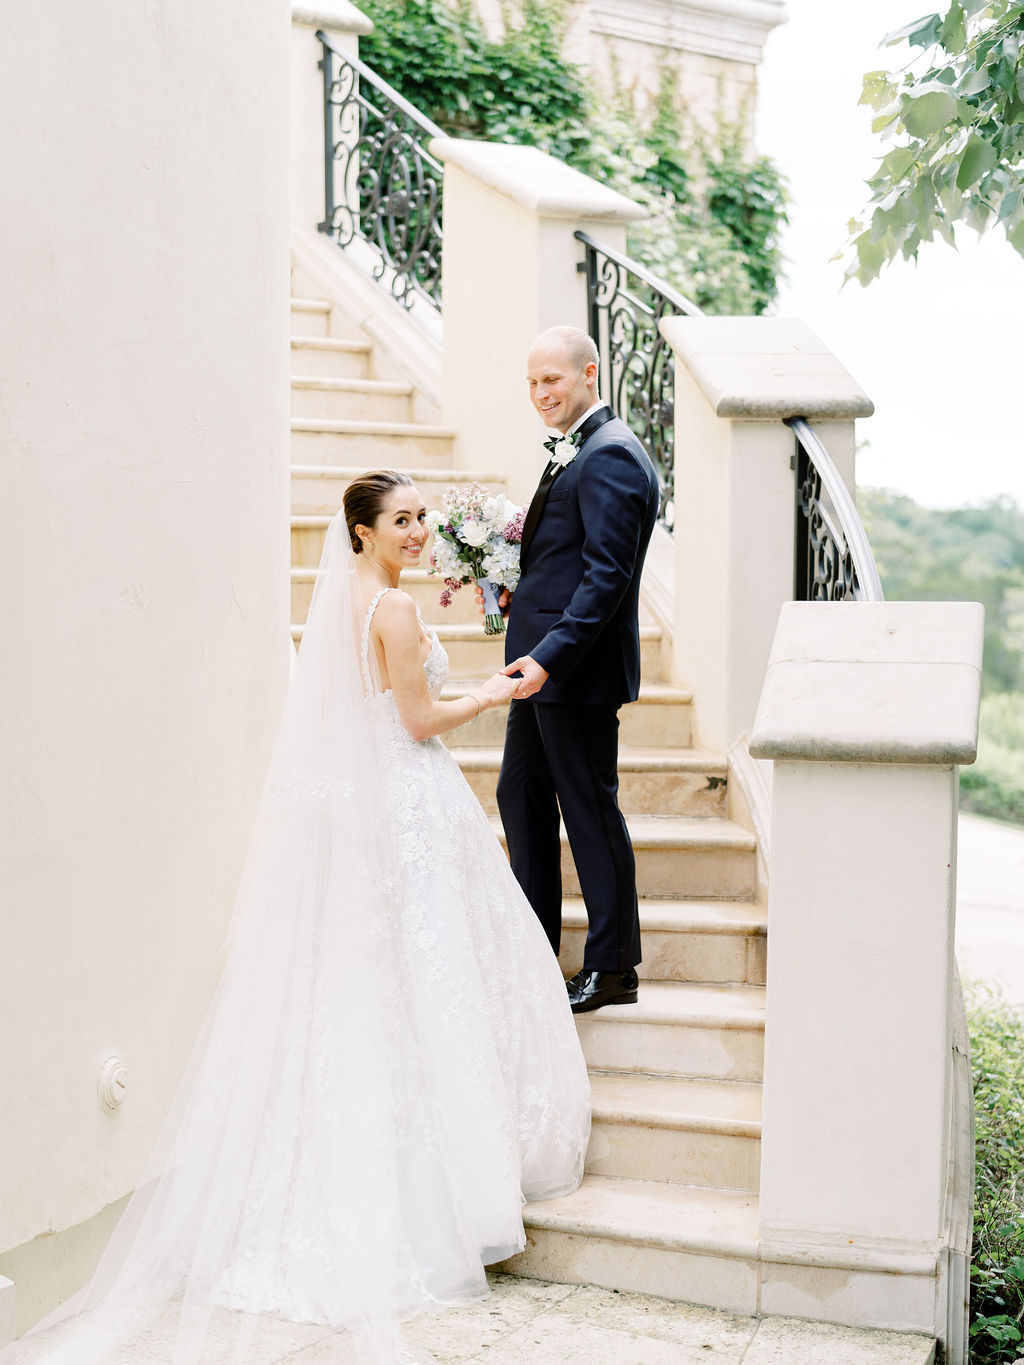 Best-Austin-Destination-Intimate-Wedding-Elopement-Photograper-Photographers-Villa-Del-Lago-75.jpg